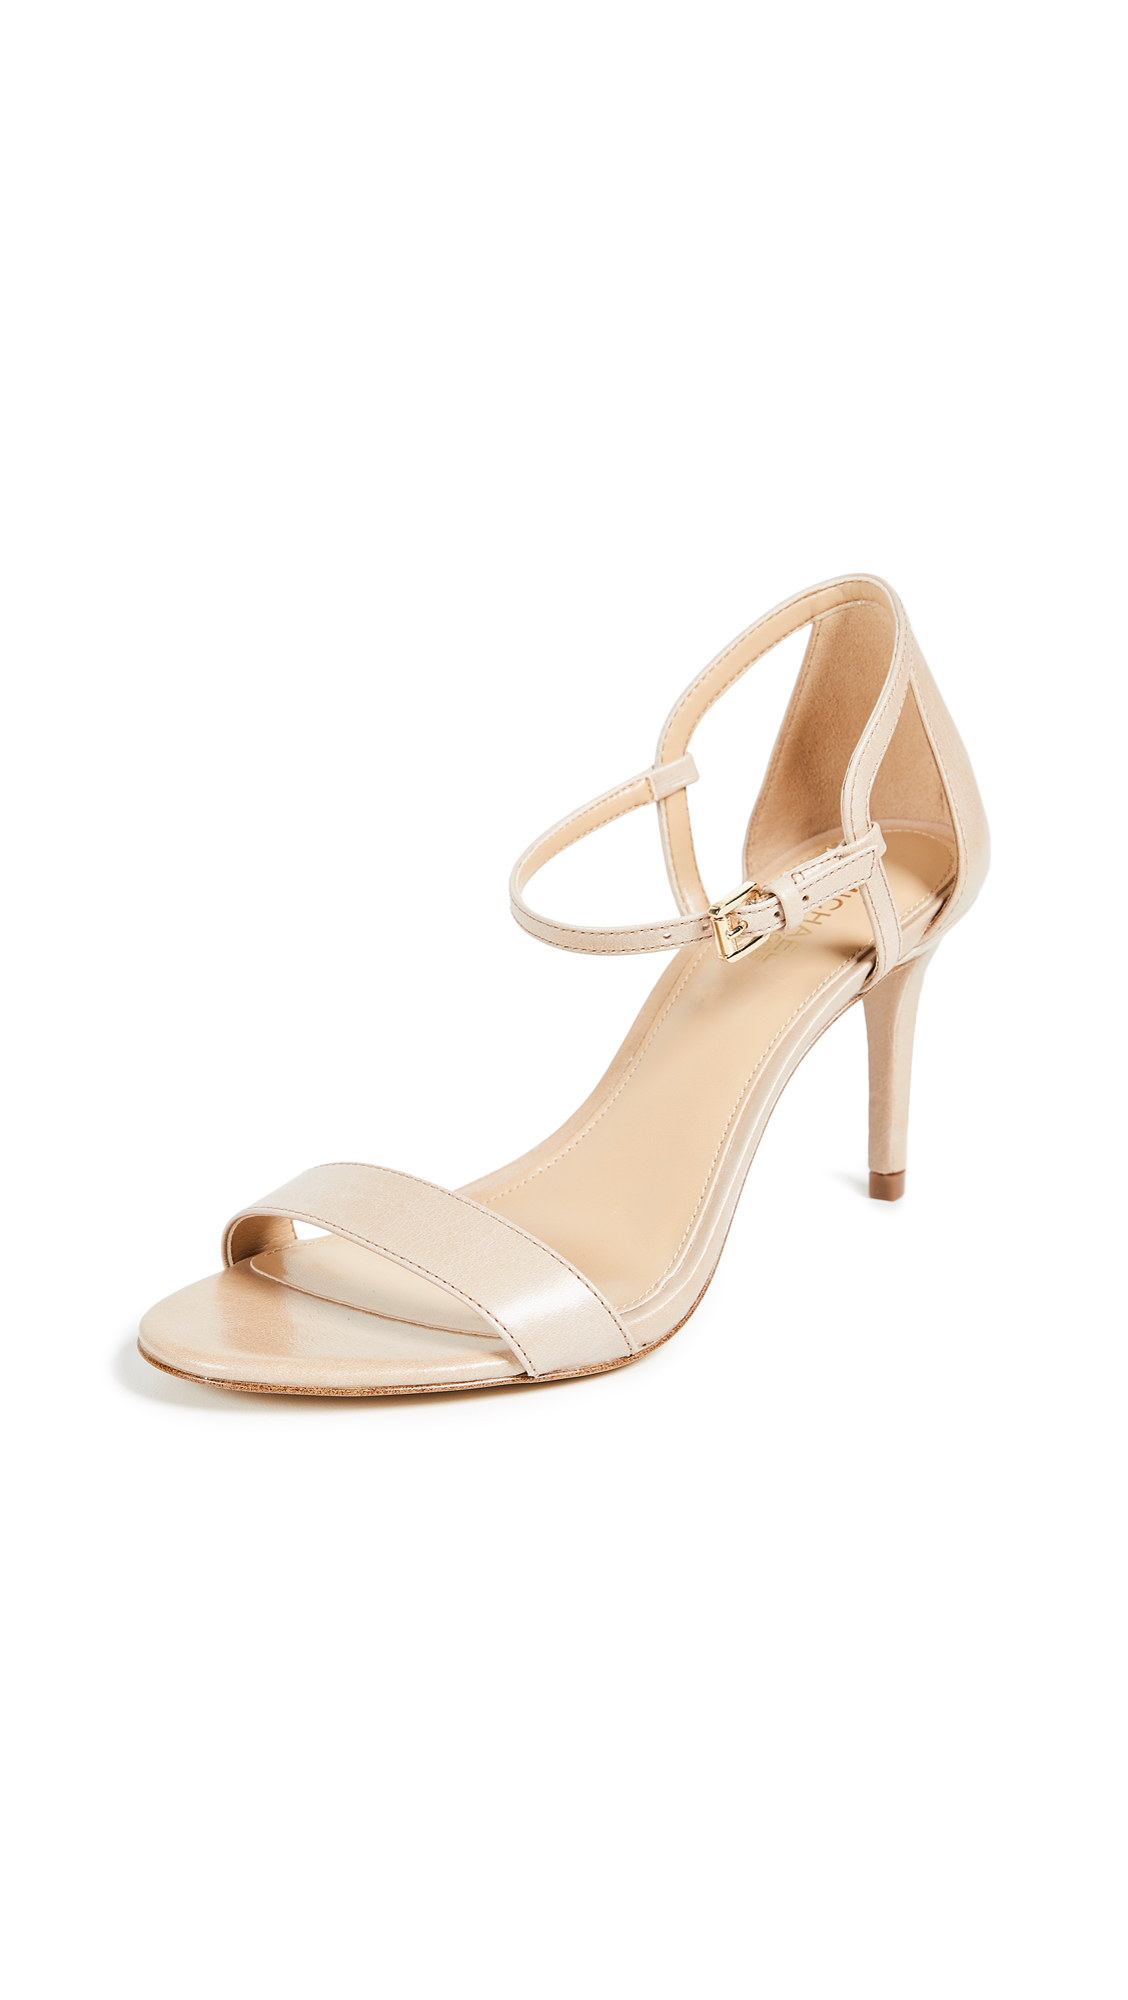 MICHAEL Michael Kors Simone Mid Sandals - Light Khaki